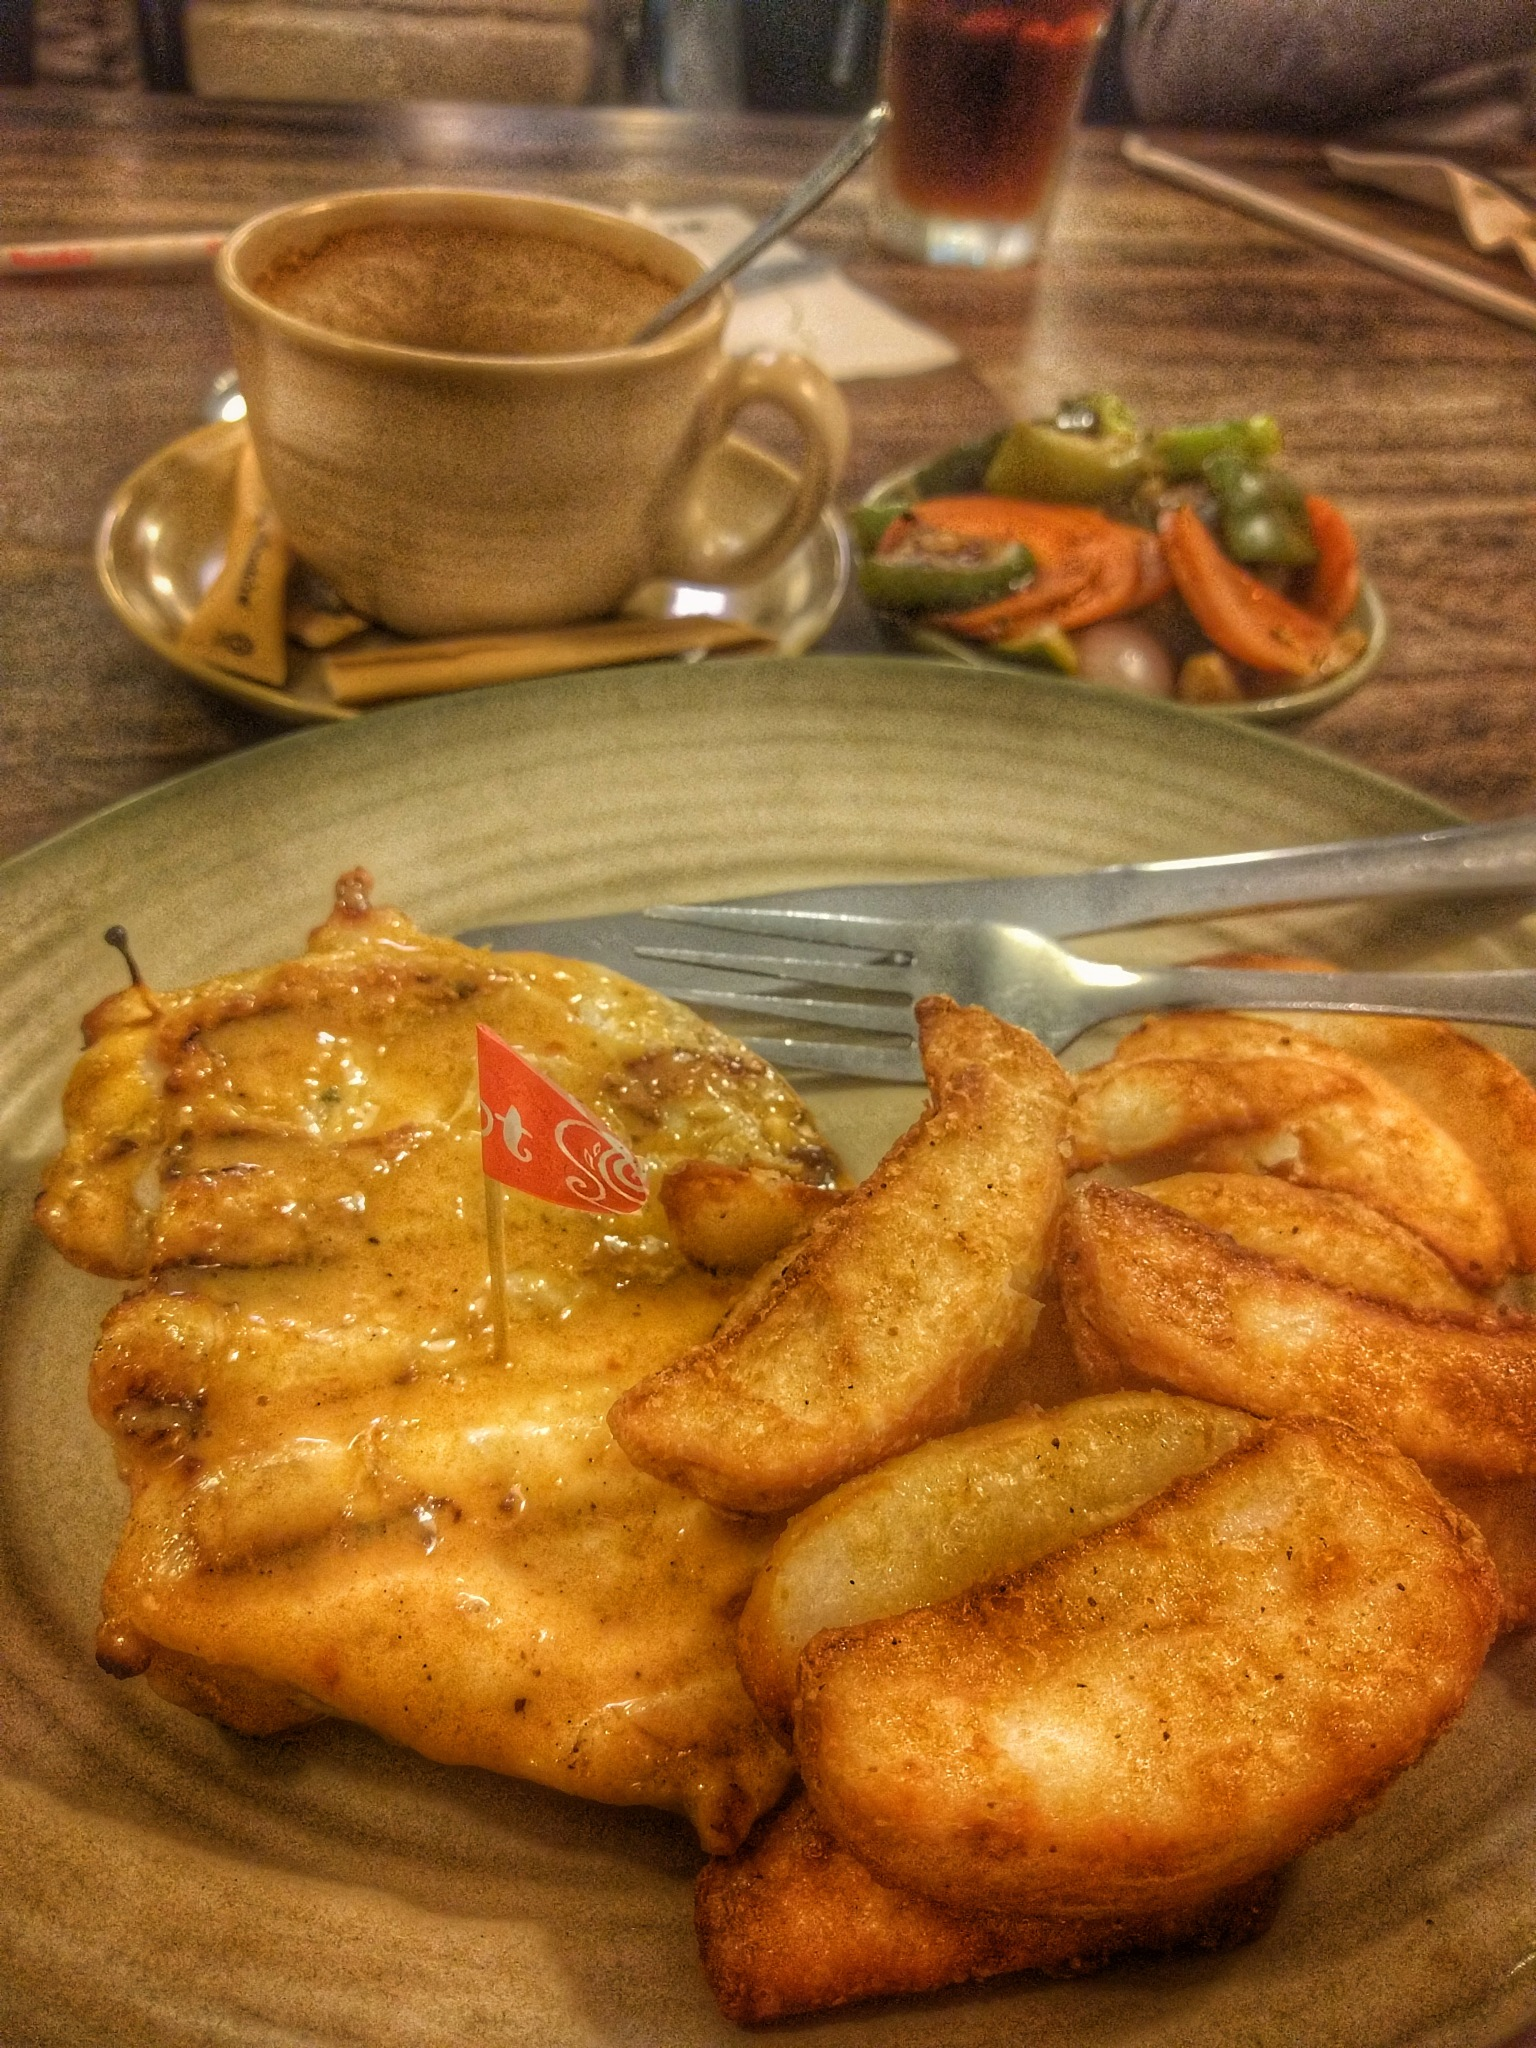 Nando's Chicken Butterfly by Michael Lee